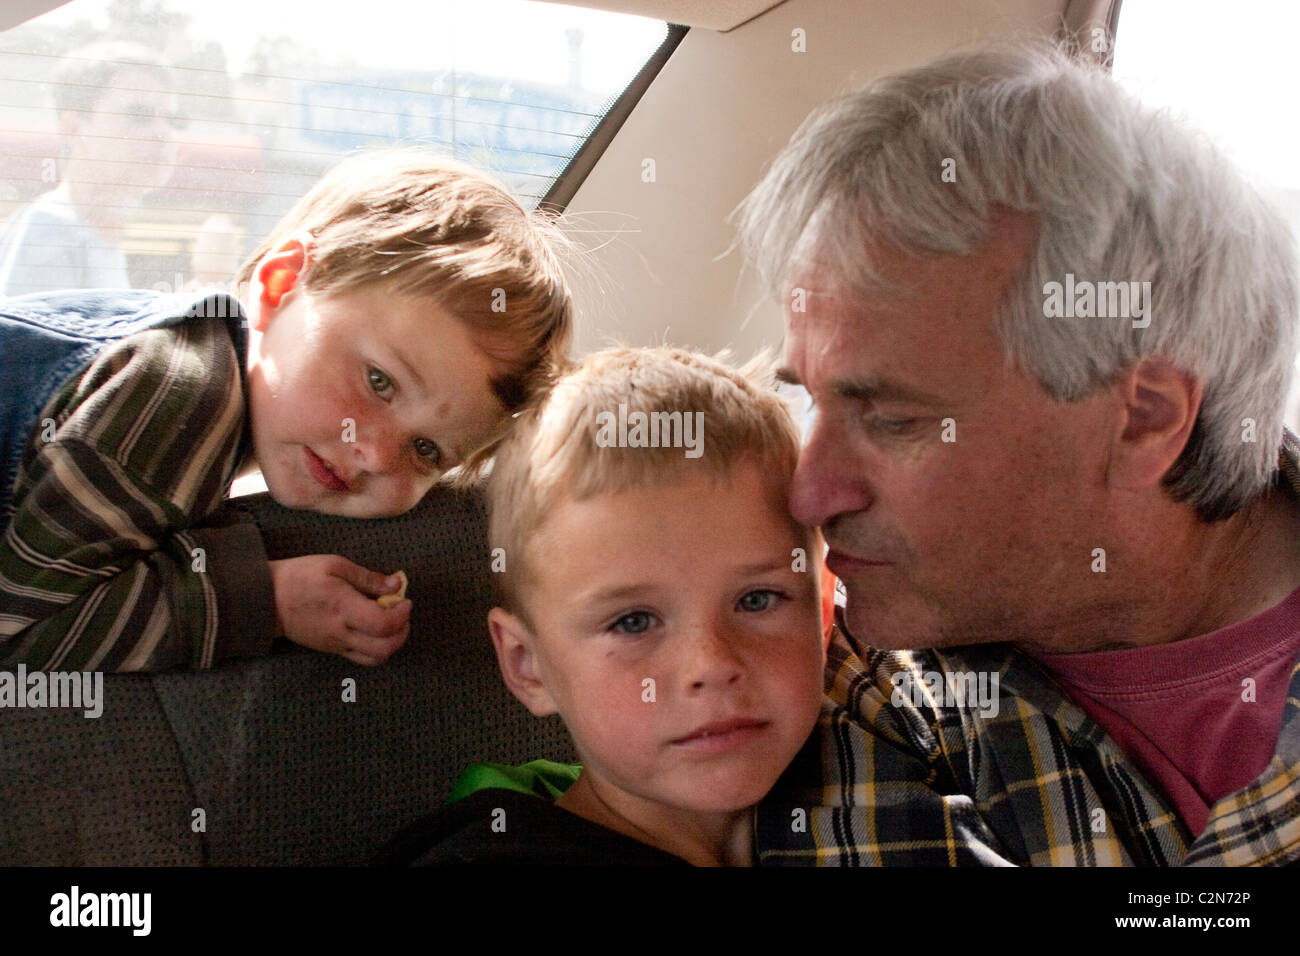 A father enjoying some quiet family time in the car with his two sons. - Stock Image